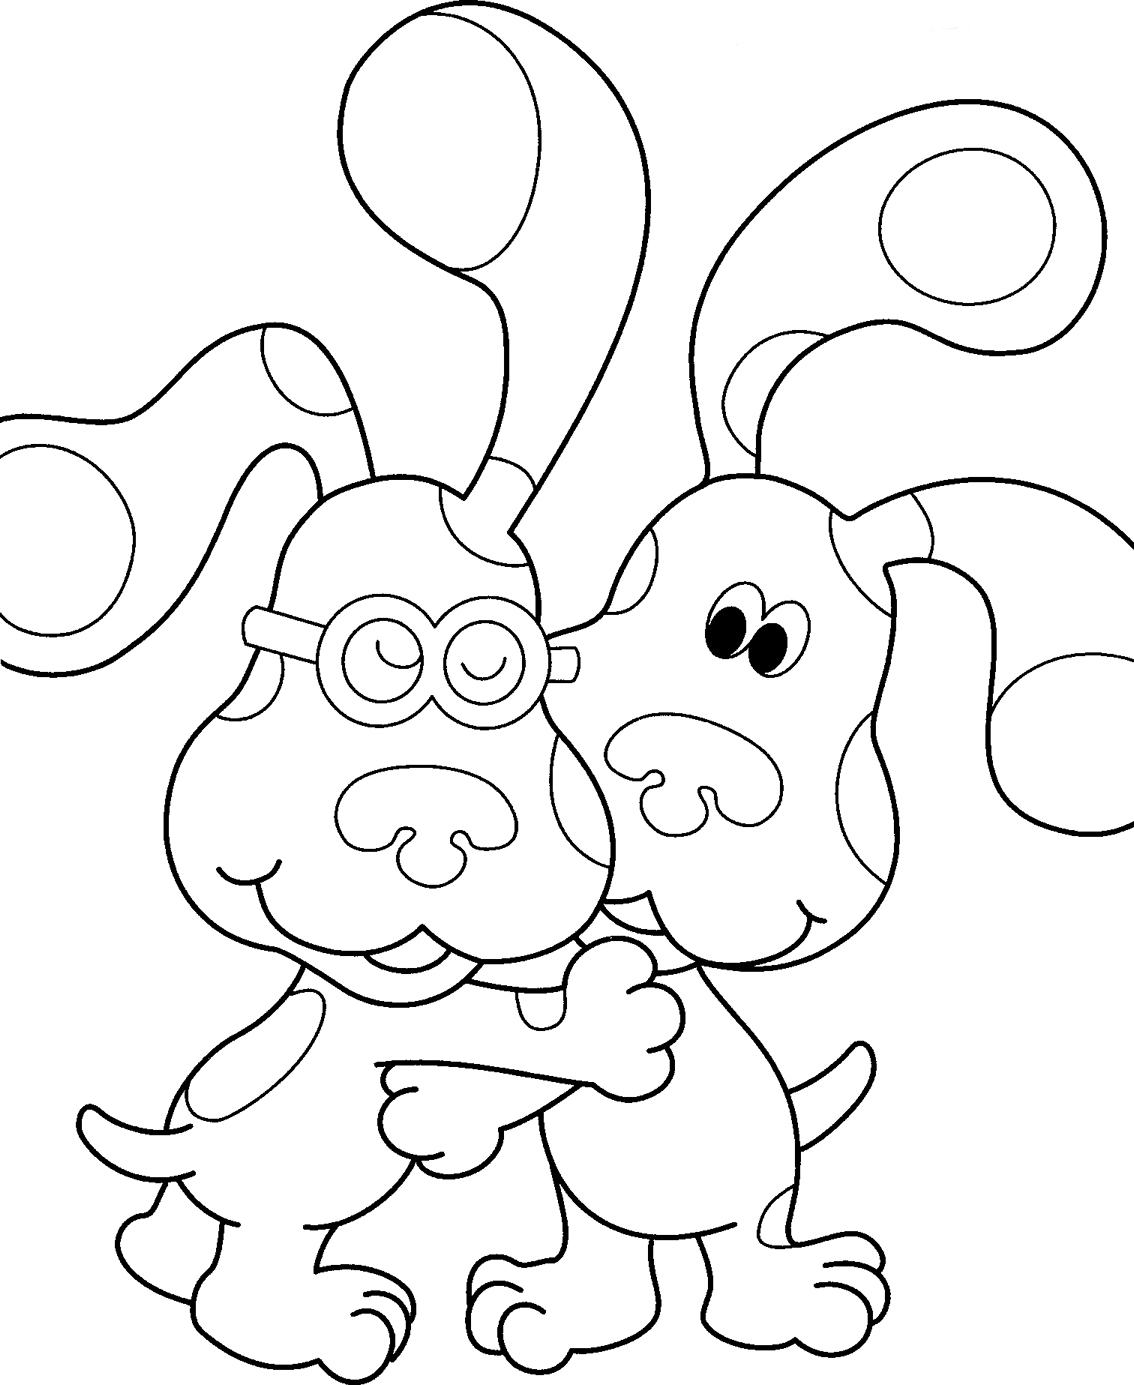 Nick Jr Coloring Pages (6)